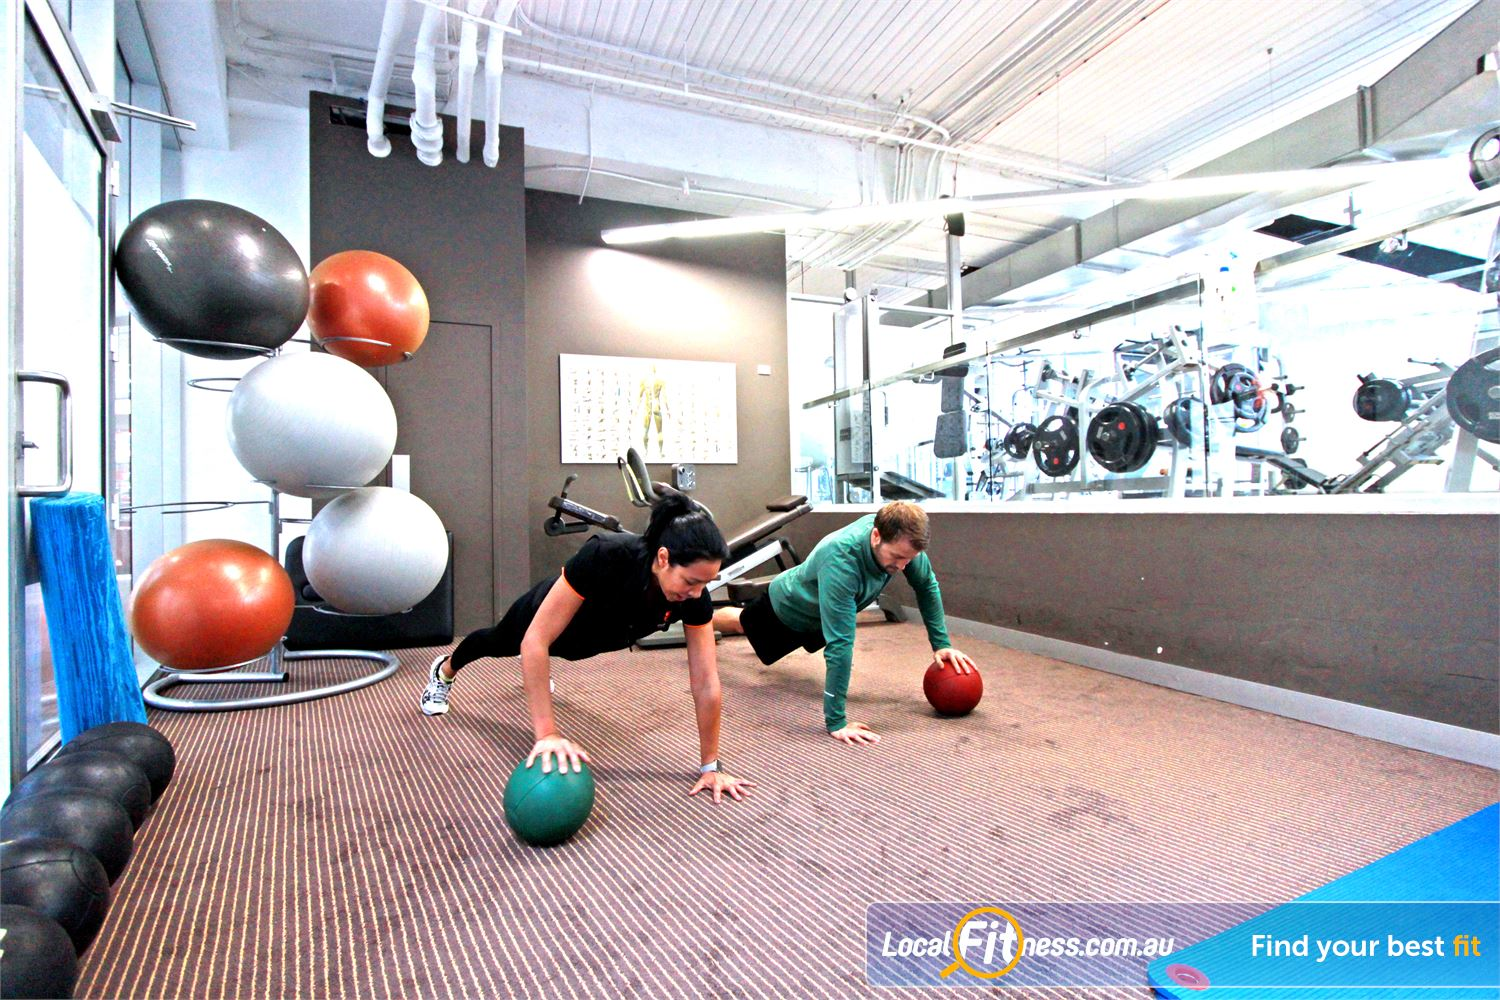 South Pacific Health Clubs Melbourne Fully equipped with fitballs, medicine balls and the Technogym FLEXability series.